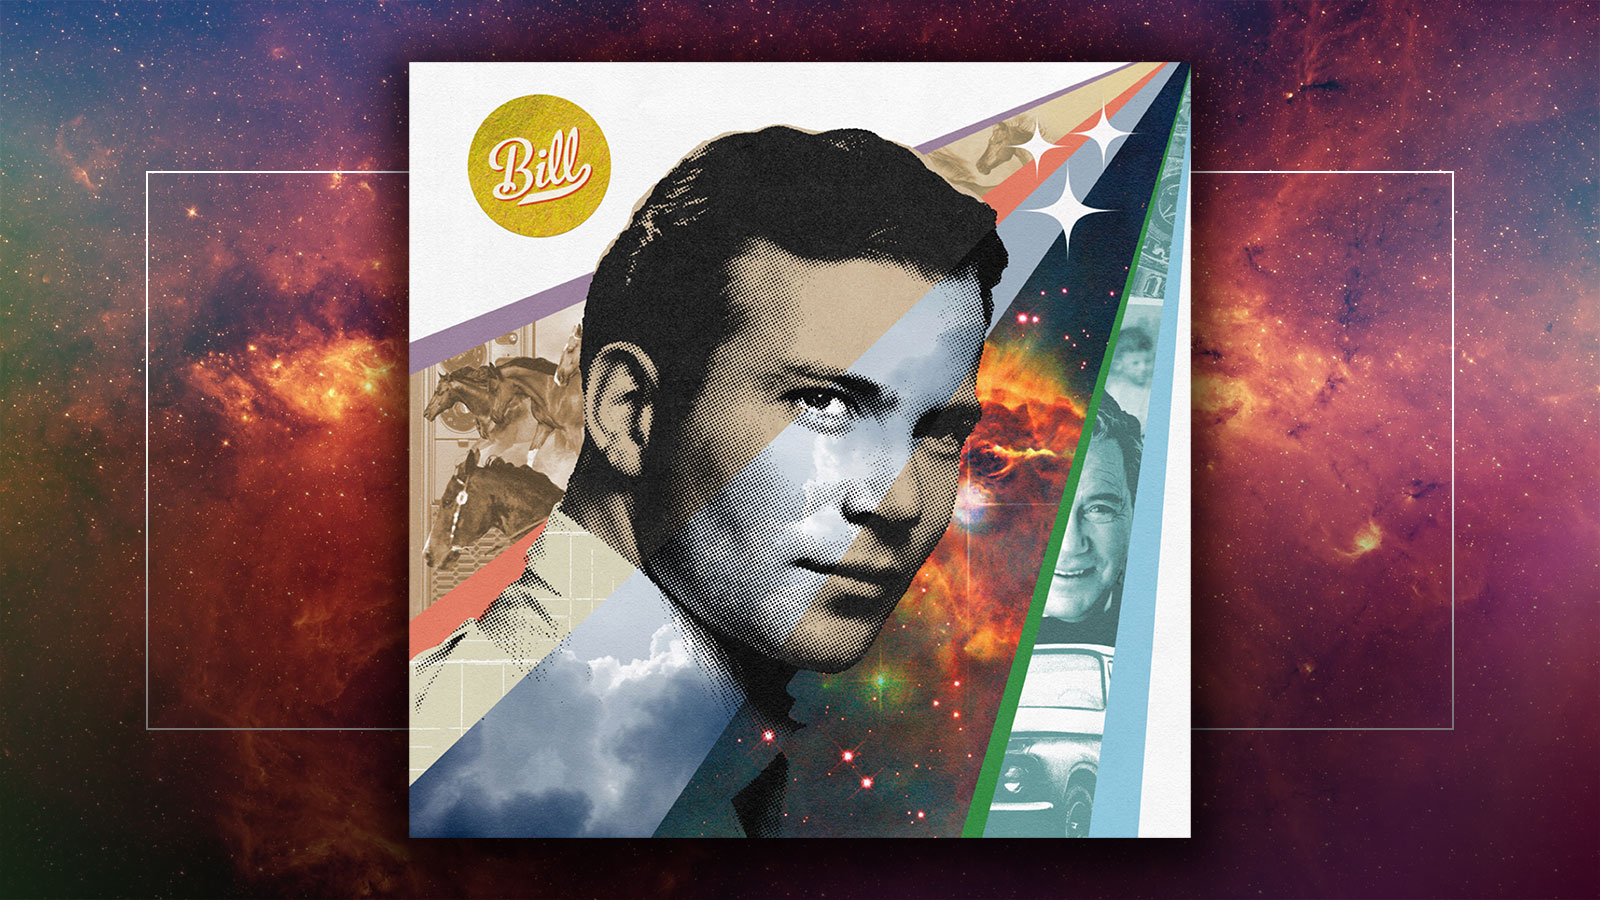 """William Shatner's New Album """"Bill"""" Review: A Whole New Way To Learn About The Star Trek Icon"""